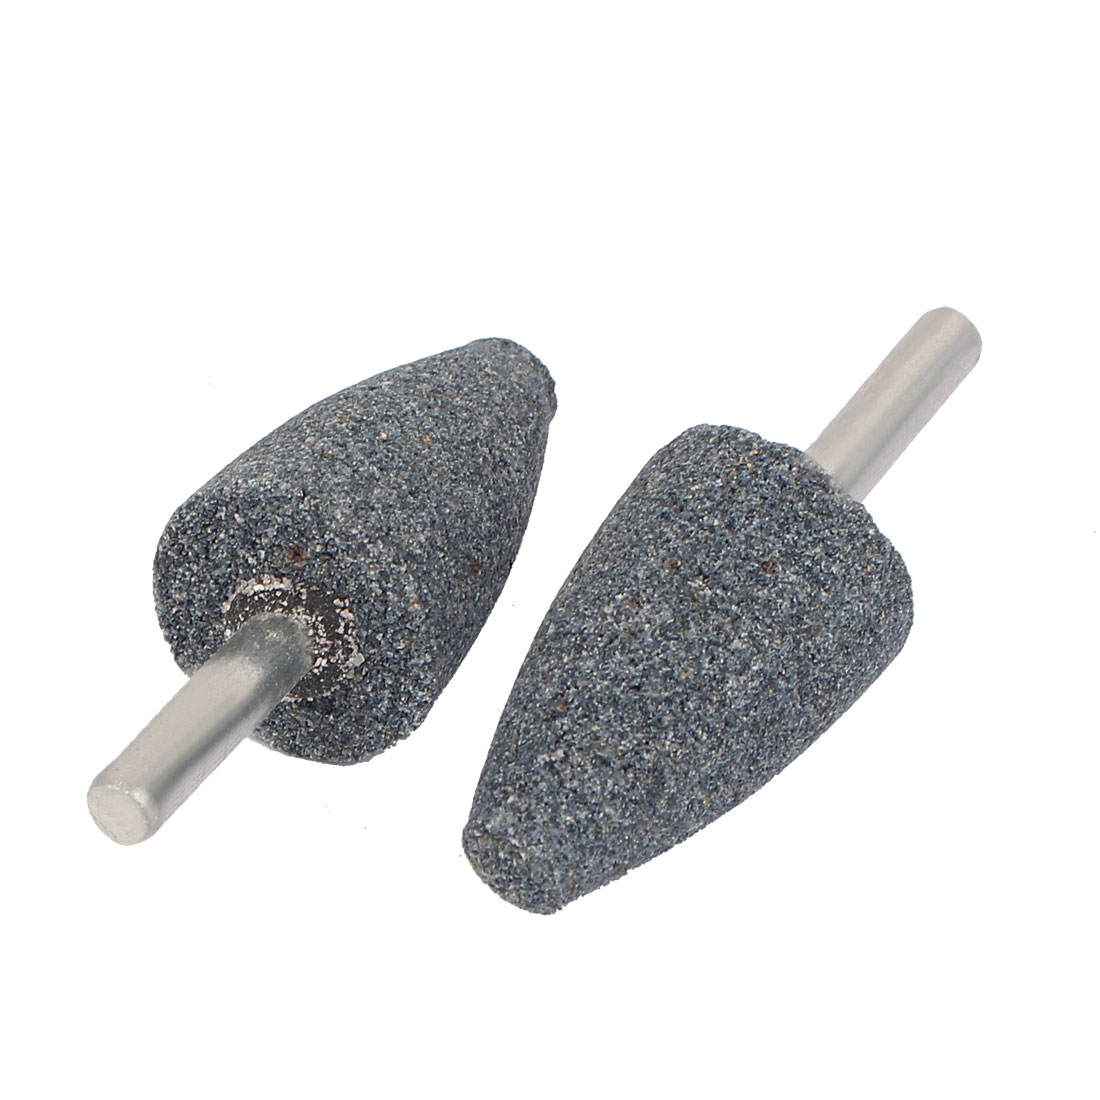 2 Pcs 24mm Dia Tapered Head Grinding Bit Polisher Mounted Points Gray